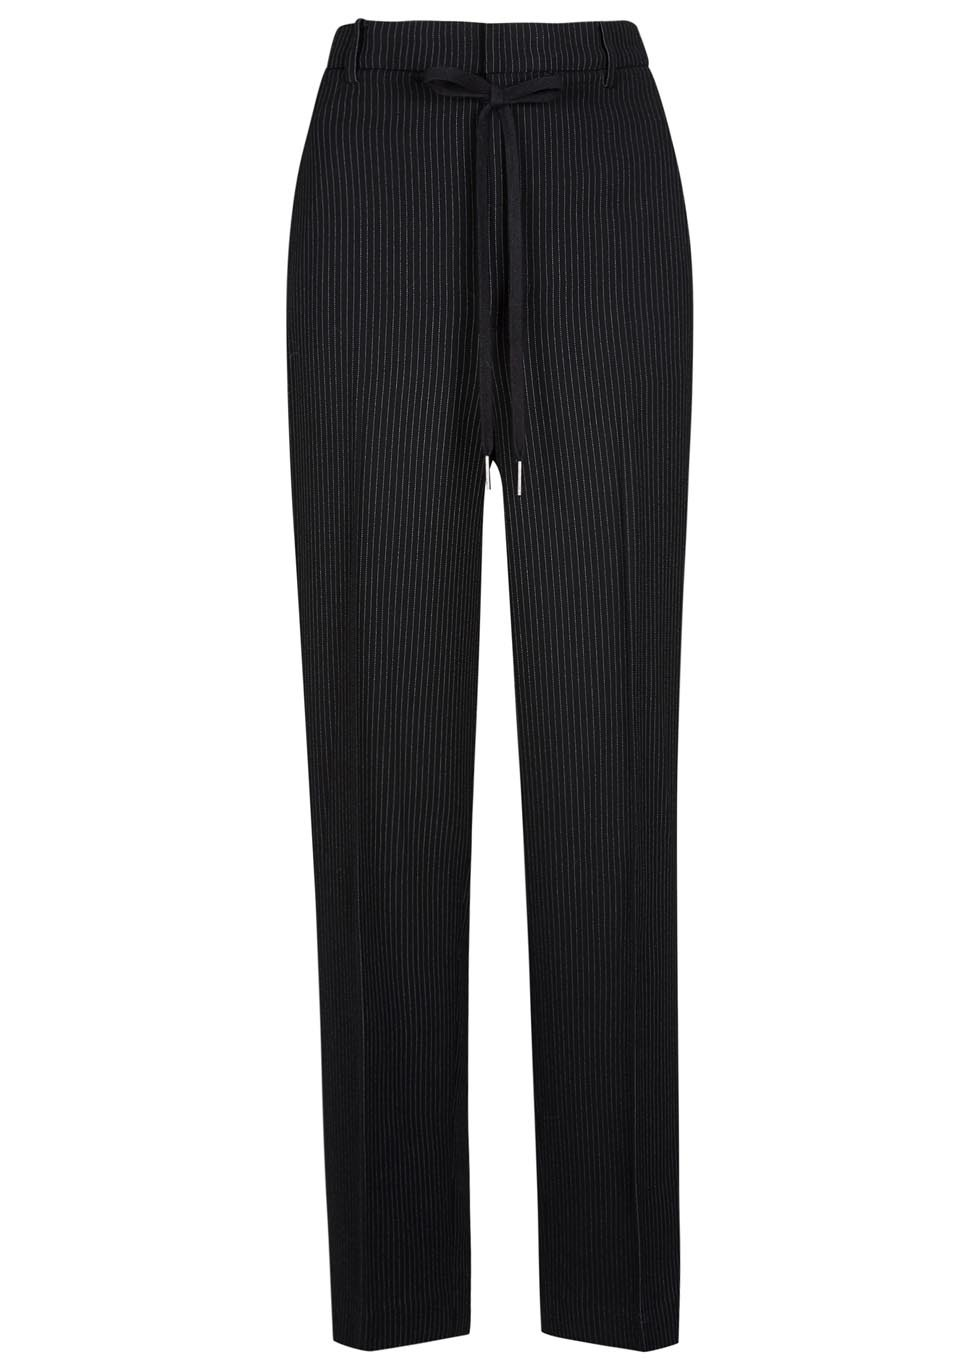 Black Pinstripe Wide Leg Trousers - length: standard; pattern: plain; waist: high rise; waist detail: belted waist/tie at waist/drawstring; secondary colour: white; predominant colour: black; fibres: silk - mix; texture group: crepes; fit: wide leg; pattern type: fabric; style: standard; occasions: creative work; season: s/s 2016; wardrobe: basic